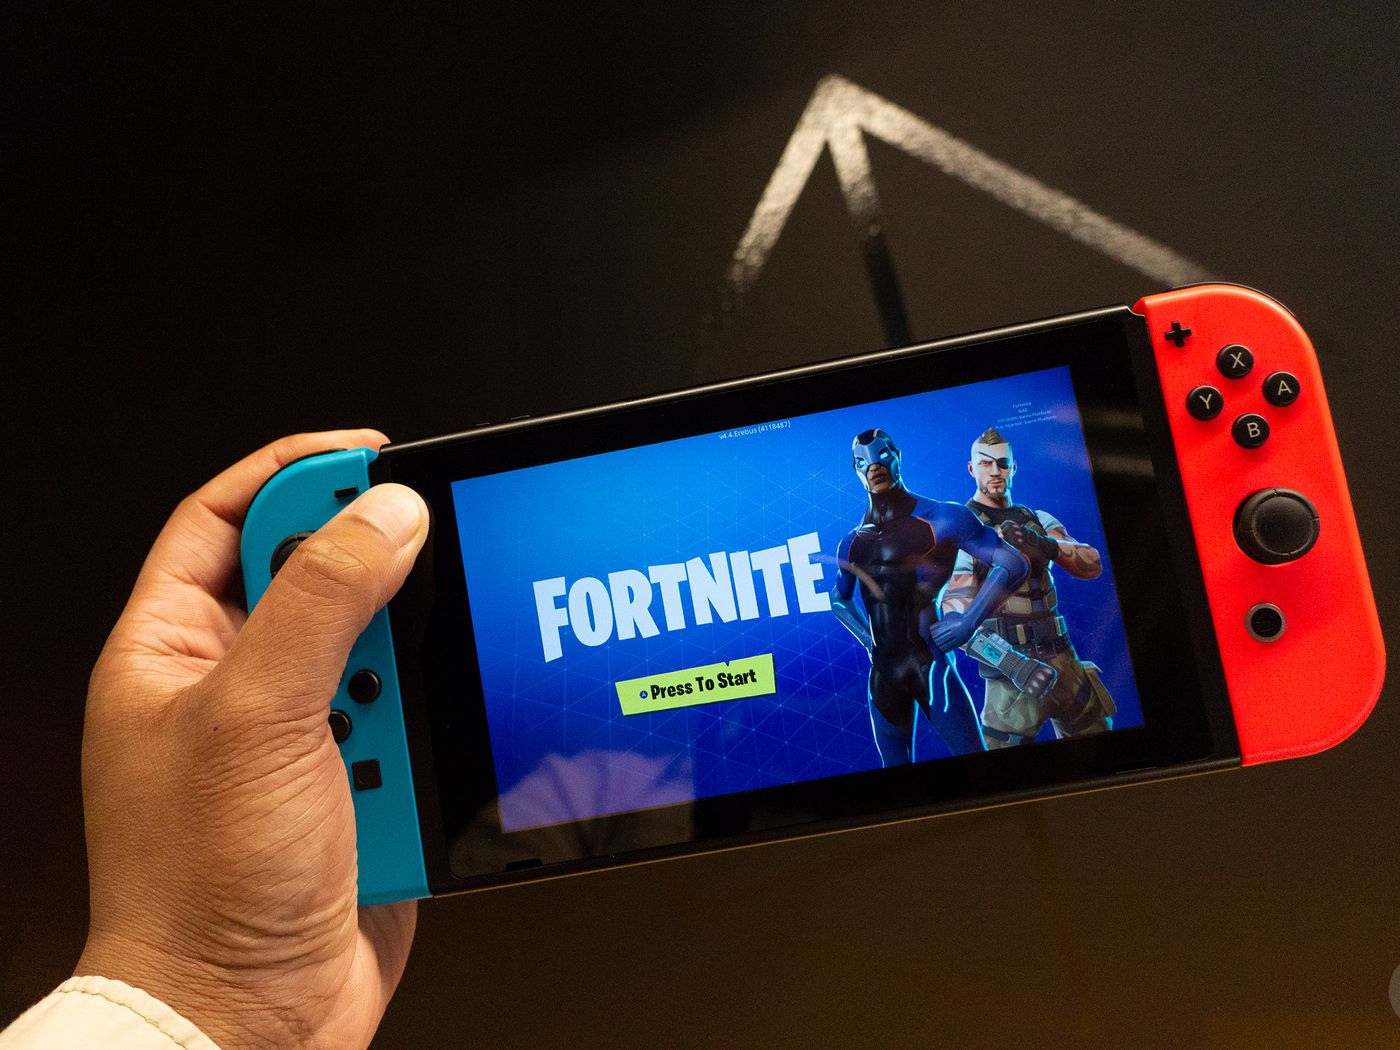 PS4 and Switch Fortnite accounts lock each other out, players